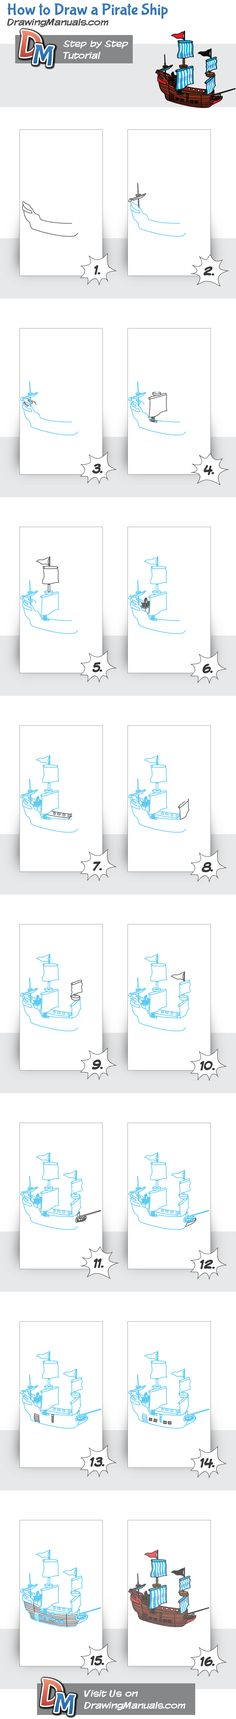 How to Draw a Pirate Ship, step-by-step drawing tutorial for children and their parents. http://drawingmanuals.com